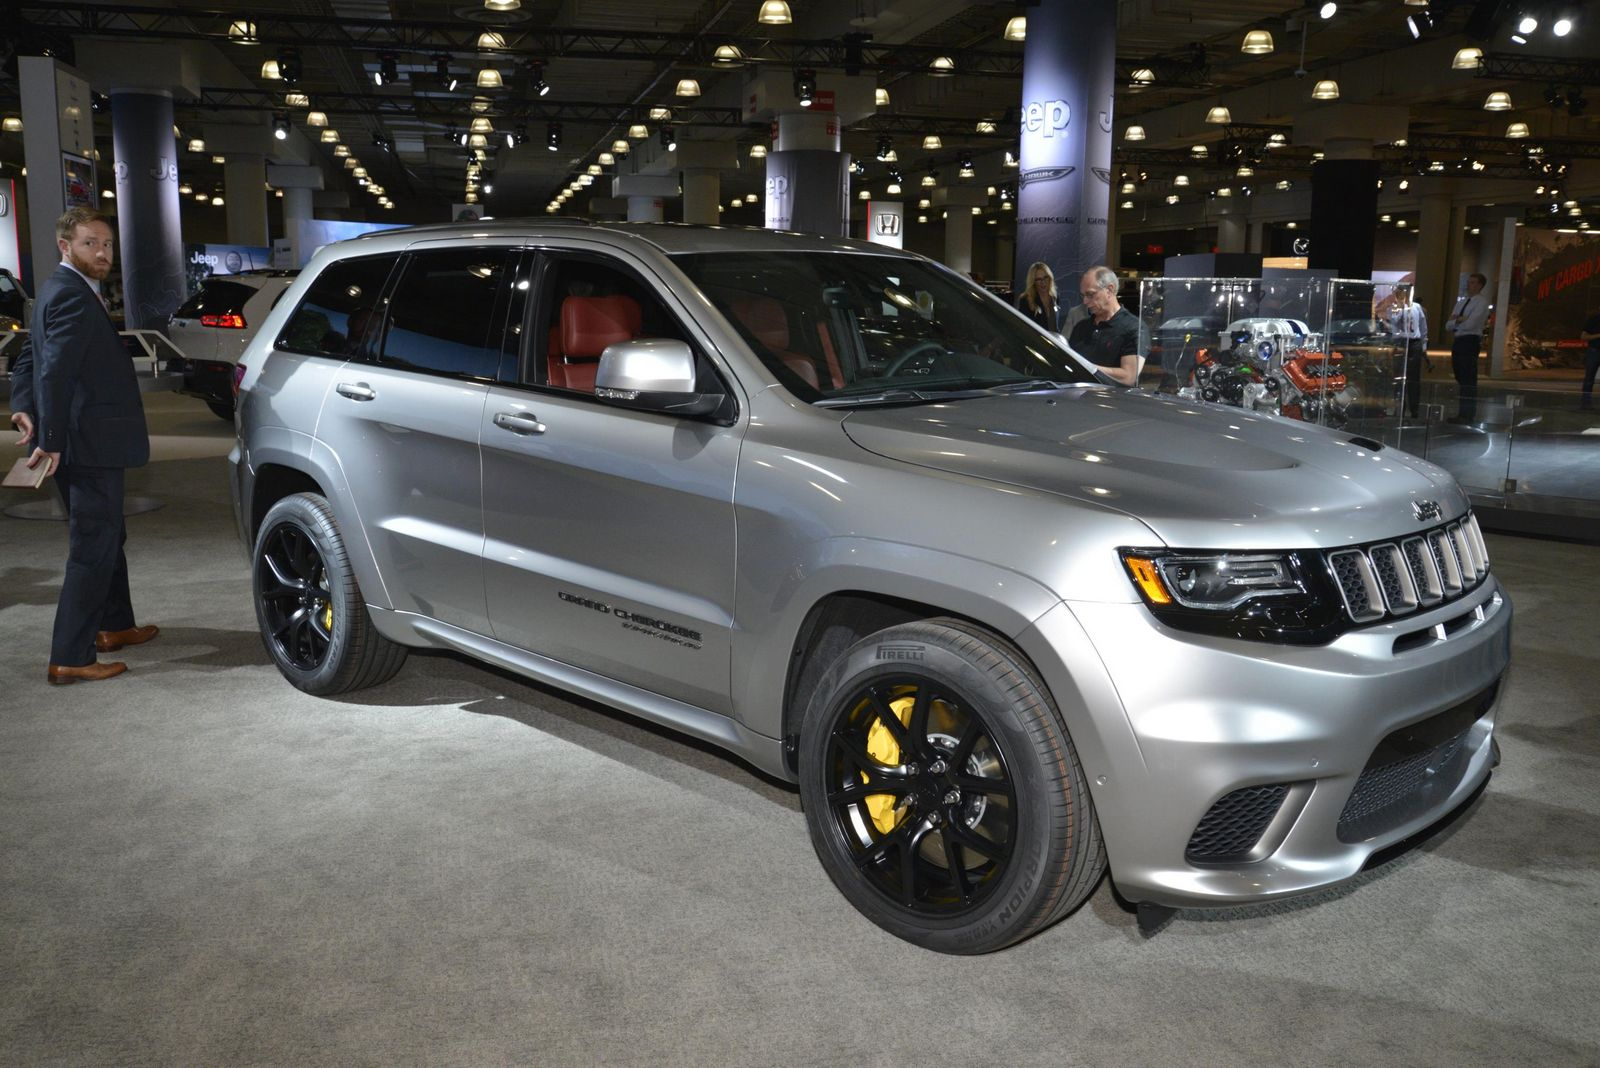 Srt8 Jeep Trackhawk >> Jeep's 707HP Grand Cherokee Trackhawk Looks Even Better In Silver | Carscoops